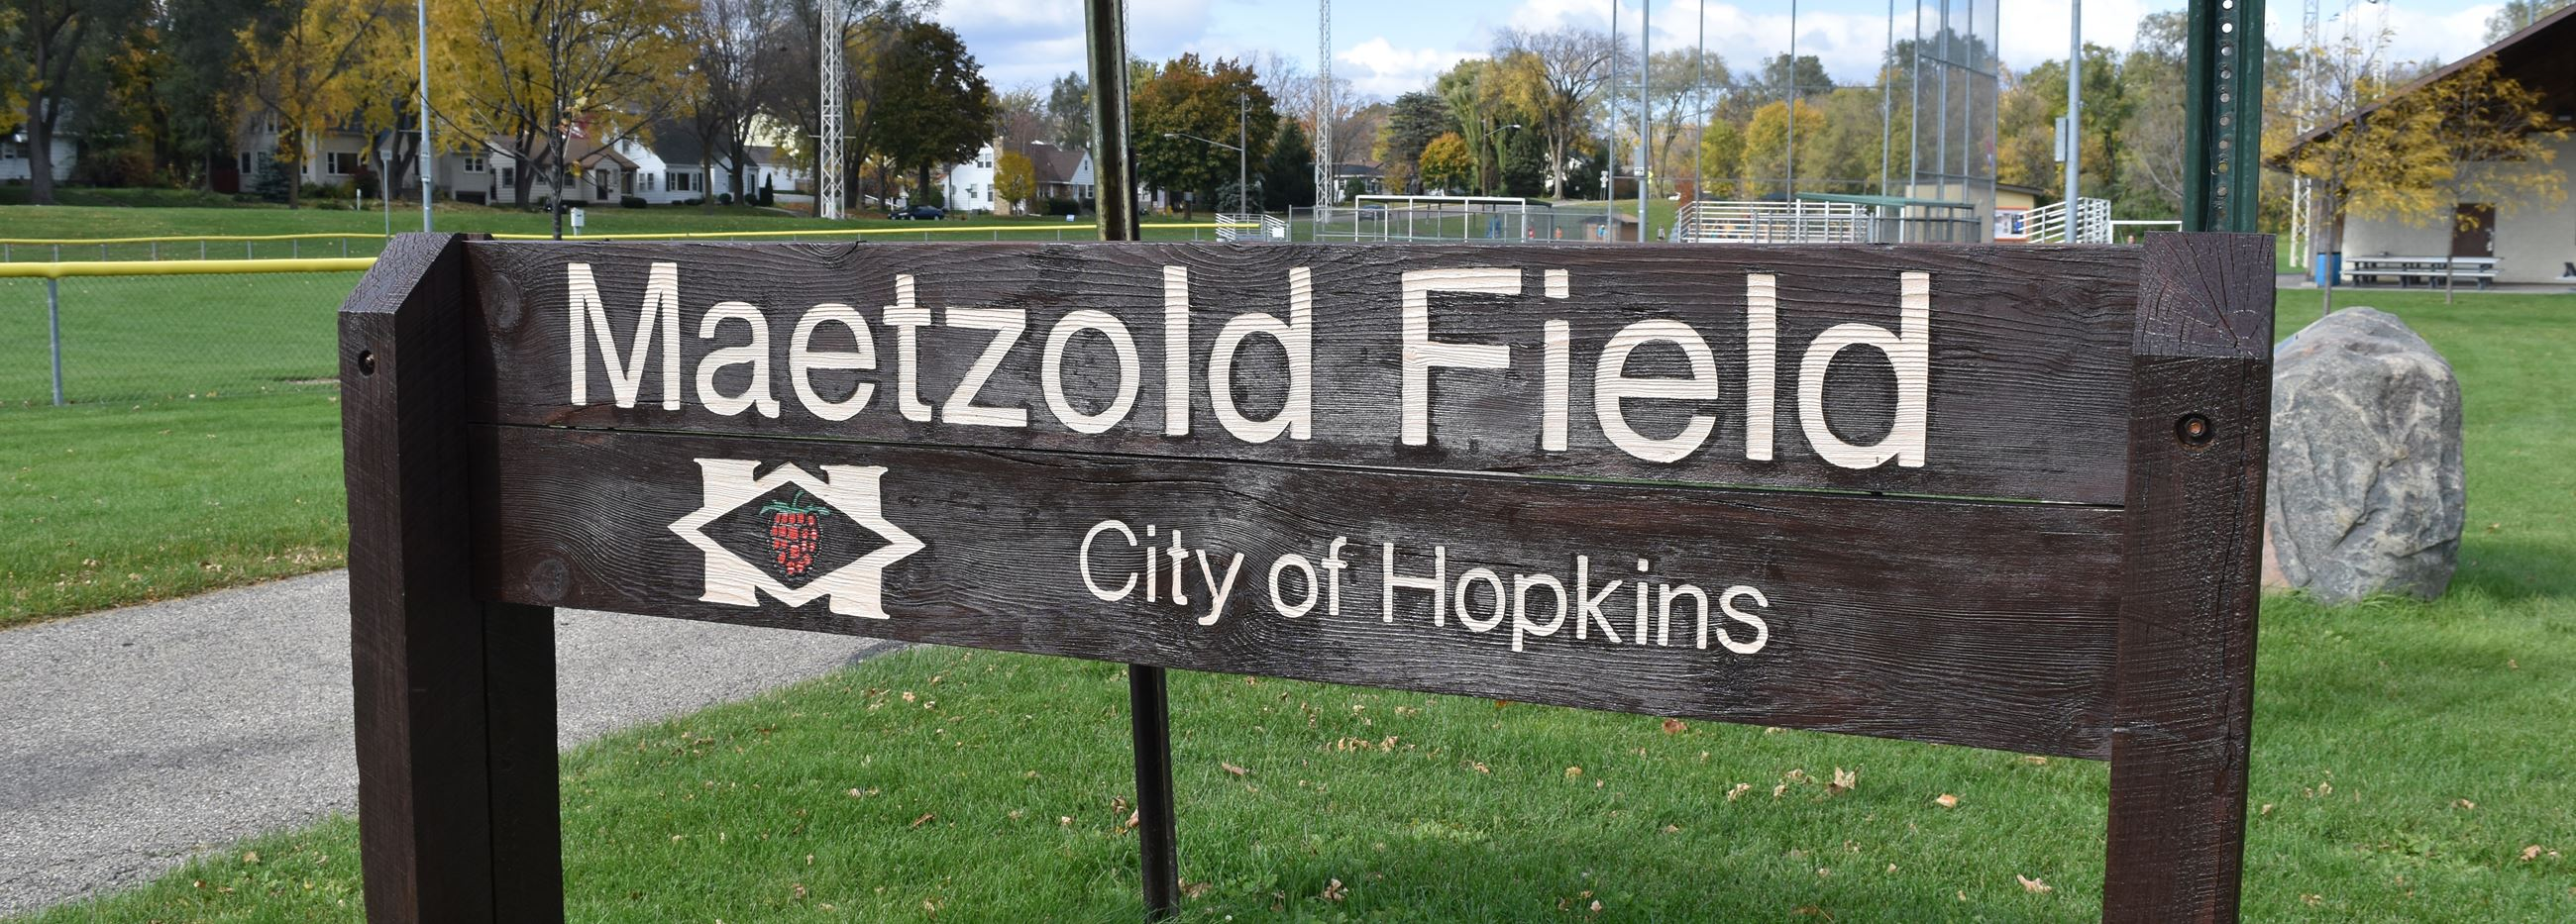 Maetzold Field City of Hopkins